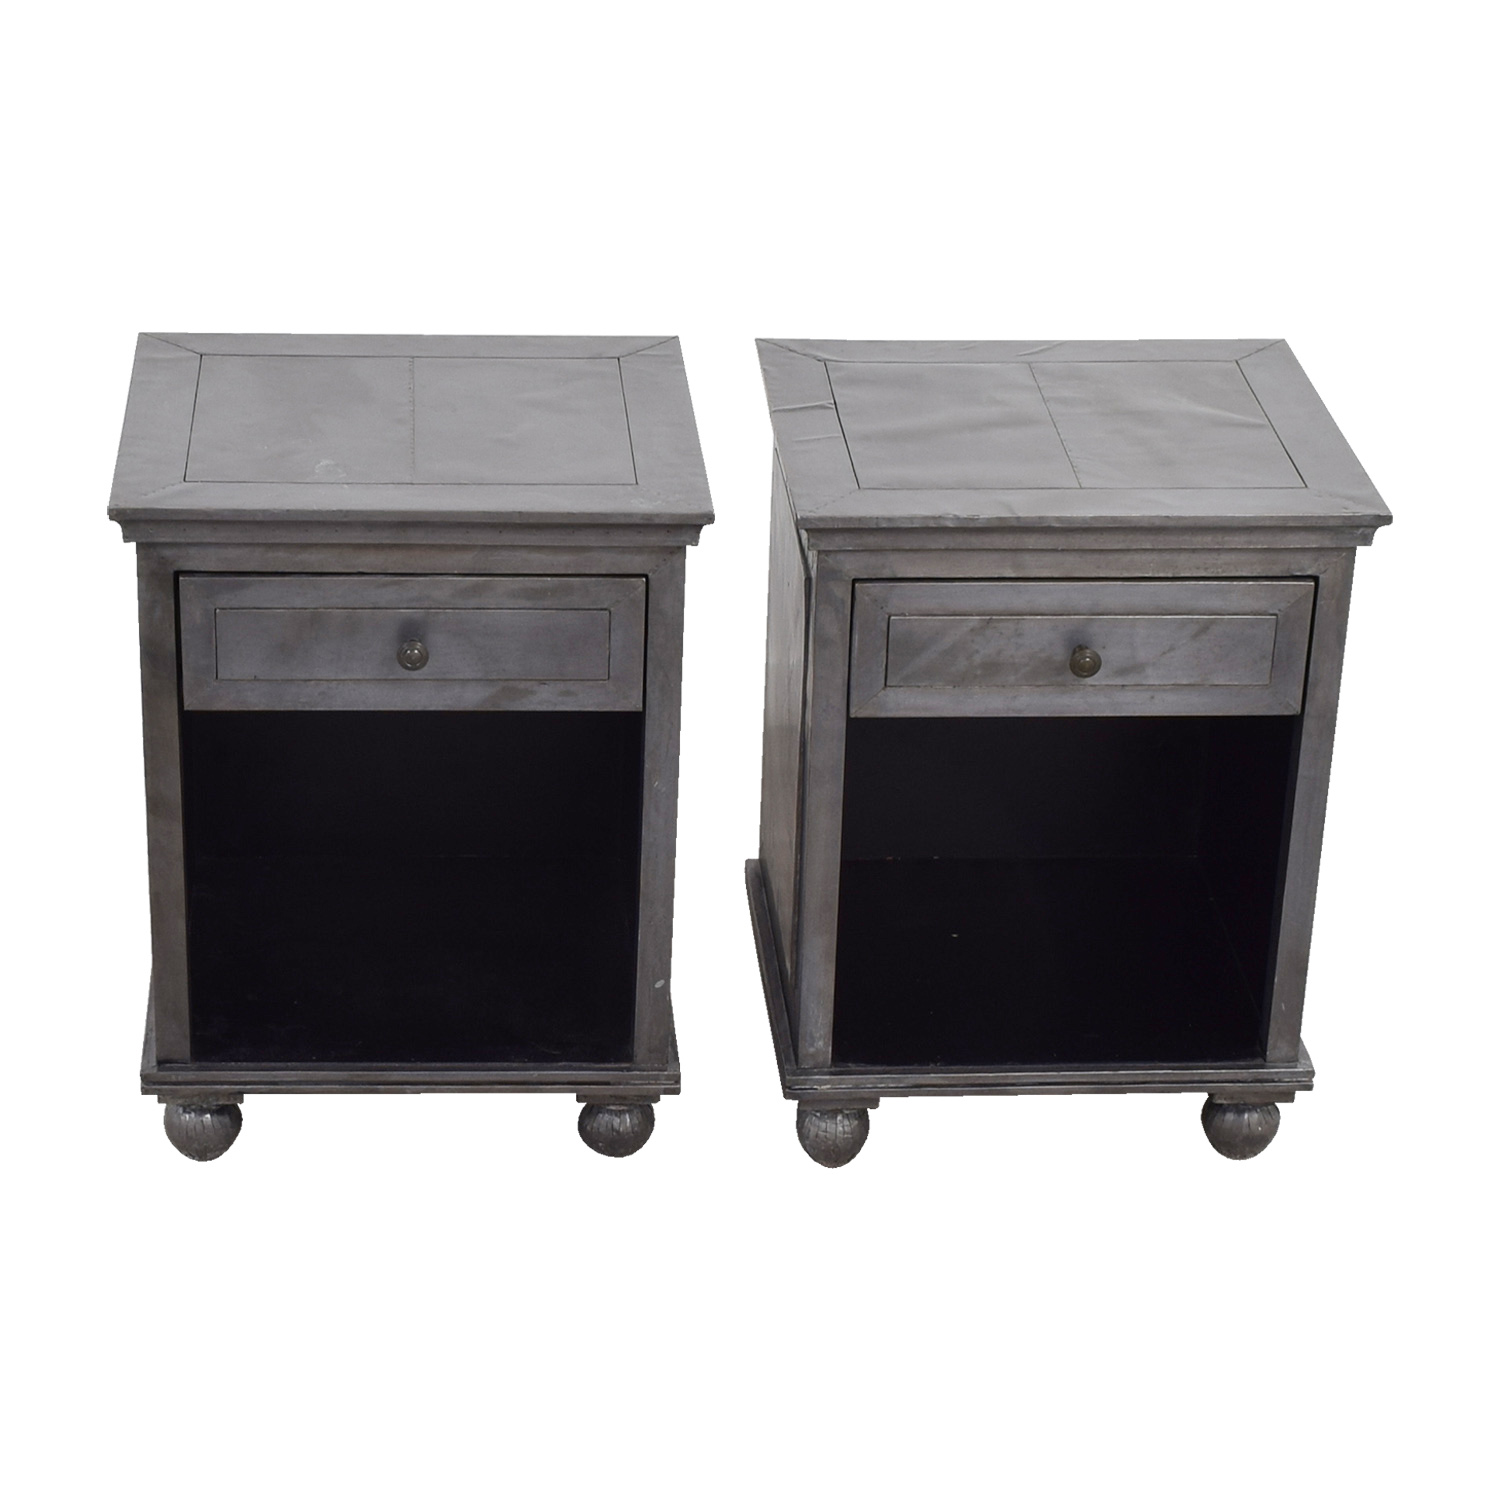 Restoration Hardware Restoration Hardware Industrial Silver Single Drawer Nightstands used